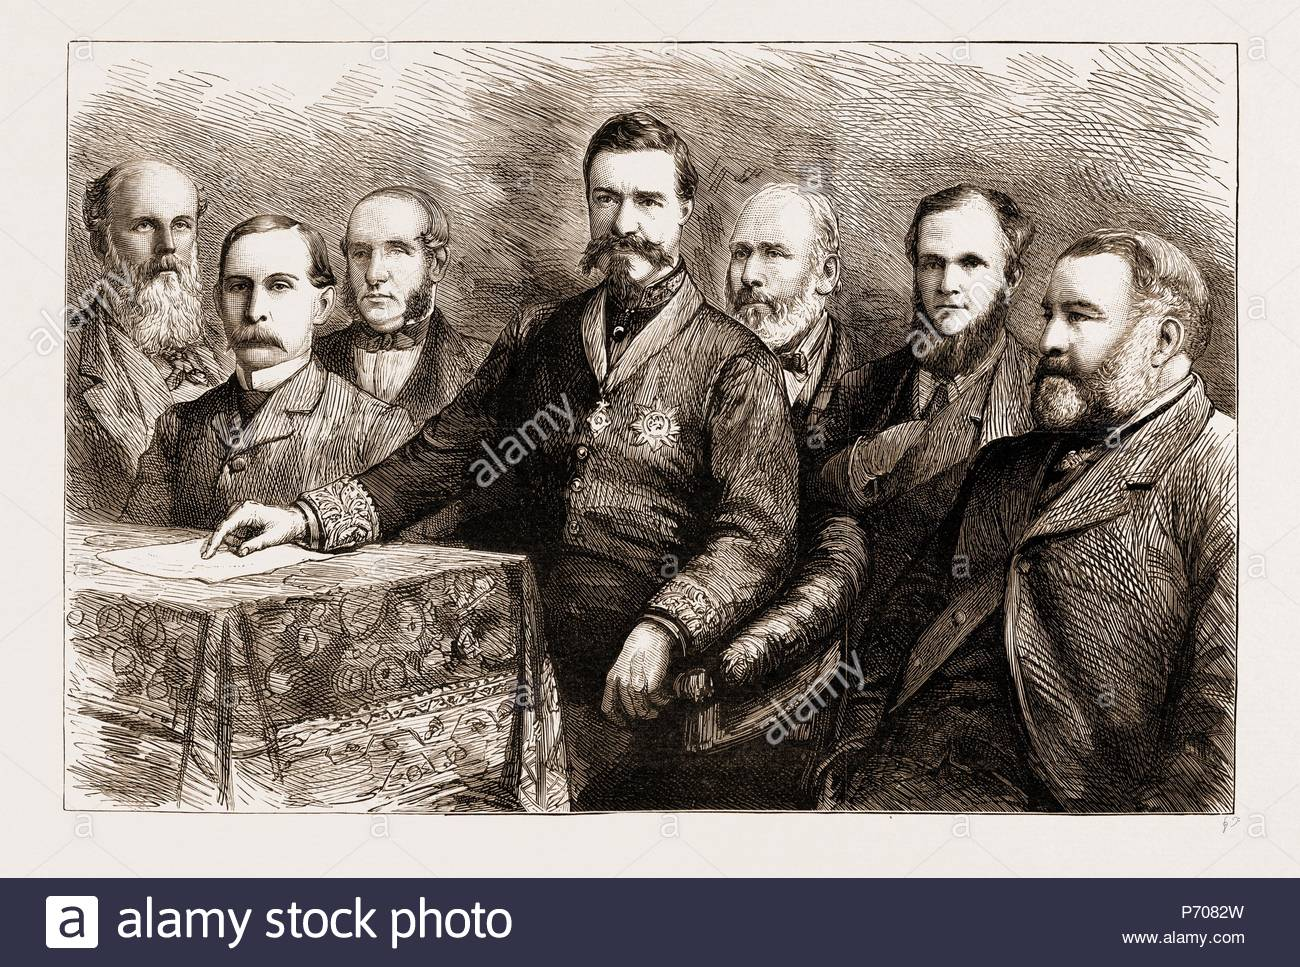 THE SOCIAL SCIENCE CONGRESS AT HUDDERSFIELD: A PORTRAIT GROUP, UK, 1883; MR. C.E. HOWARD VINCENT, DIRECTOR OF CRIMINAL INVESTIGATORS, President of the Repression of Crime Section, SIR RICHARD TEMPLE, BART., G.C.S.I., LL.D., President of the National Association for the Promotion of Social Science, MR. T. PRIDGIN TEALE, F.R.C.S., President of the Health Section, MR. WILLIAM BARBER, Q.C., President of the International and Municipal Law Section, MR. FRANCIS SHARPE POWELL, President of the Education Section, MR. J.E. THOROLD ROGERS, M.P., President of the Economy and Trade Section, SIR RUPERT A.  - Stock Image